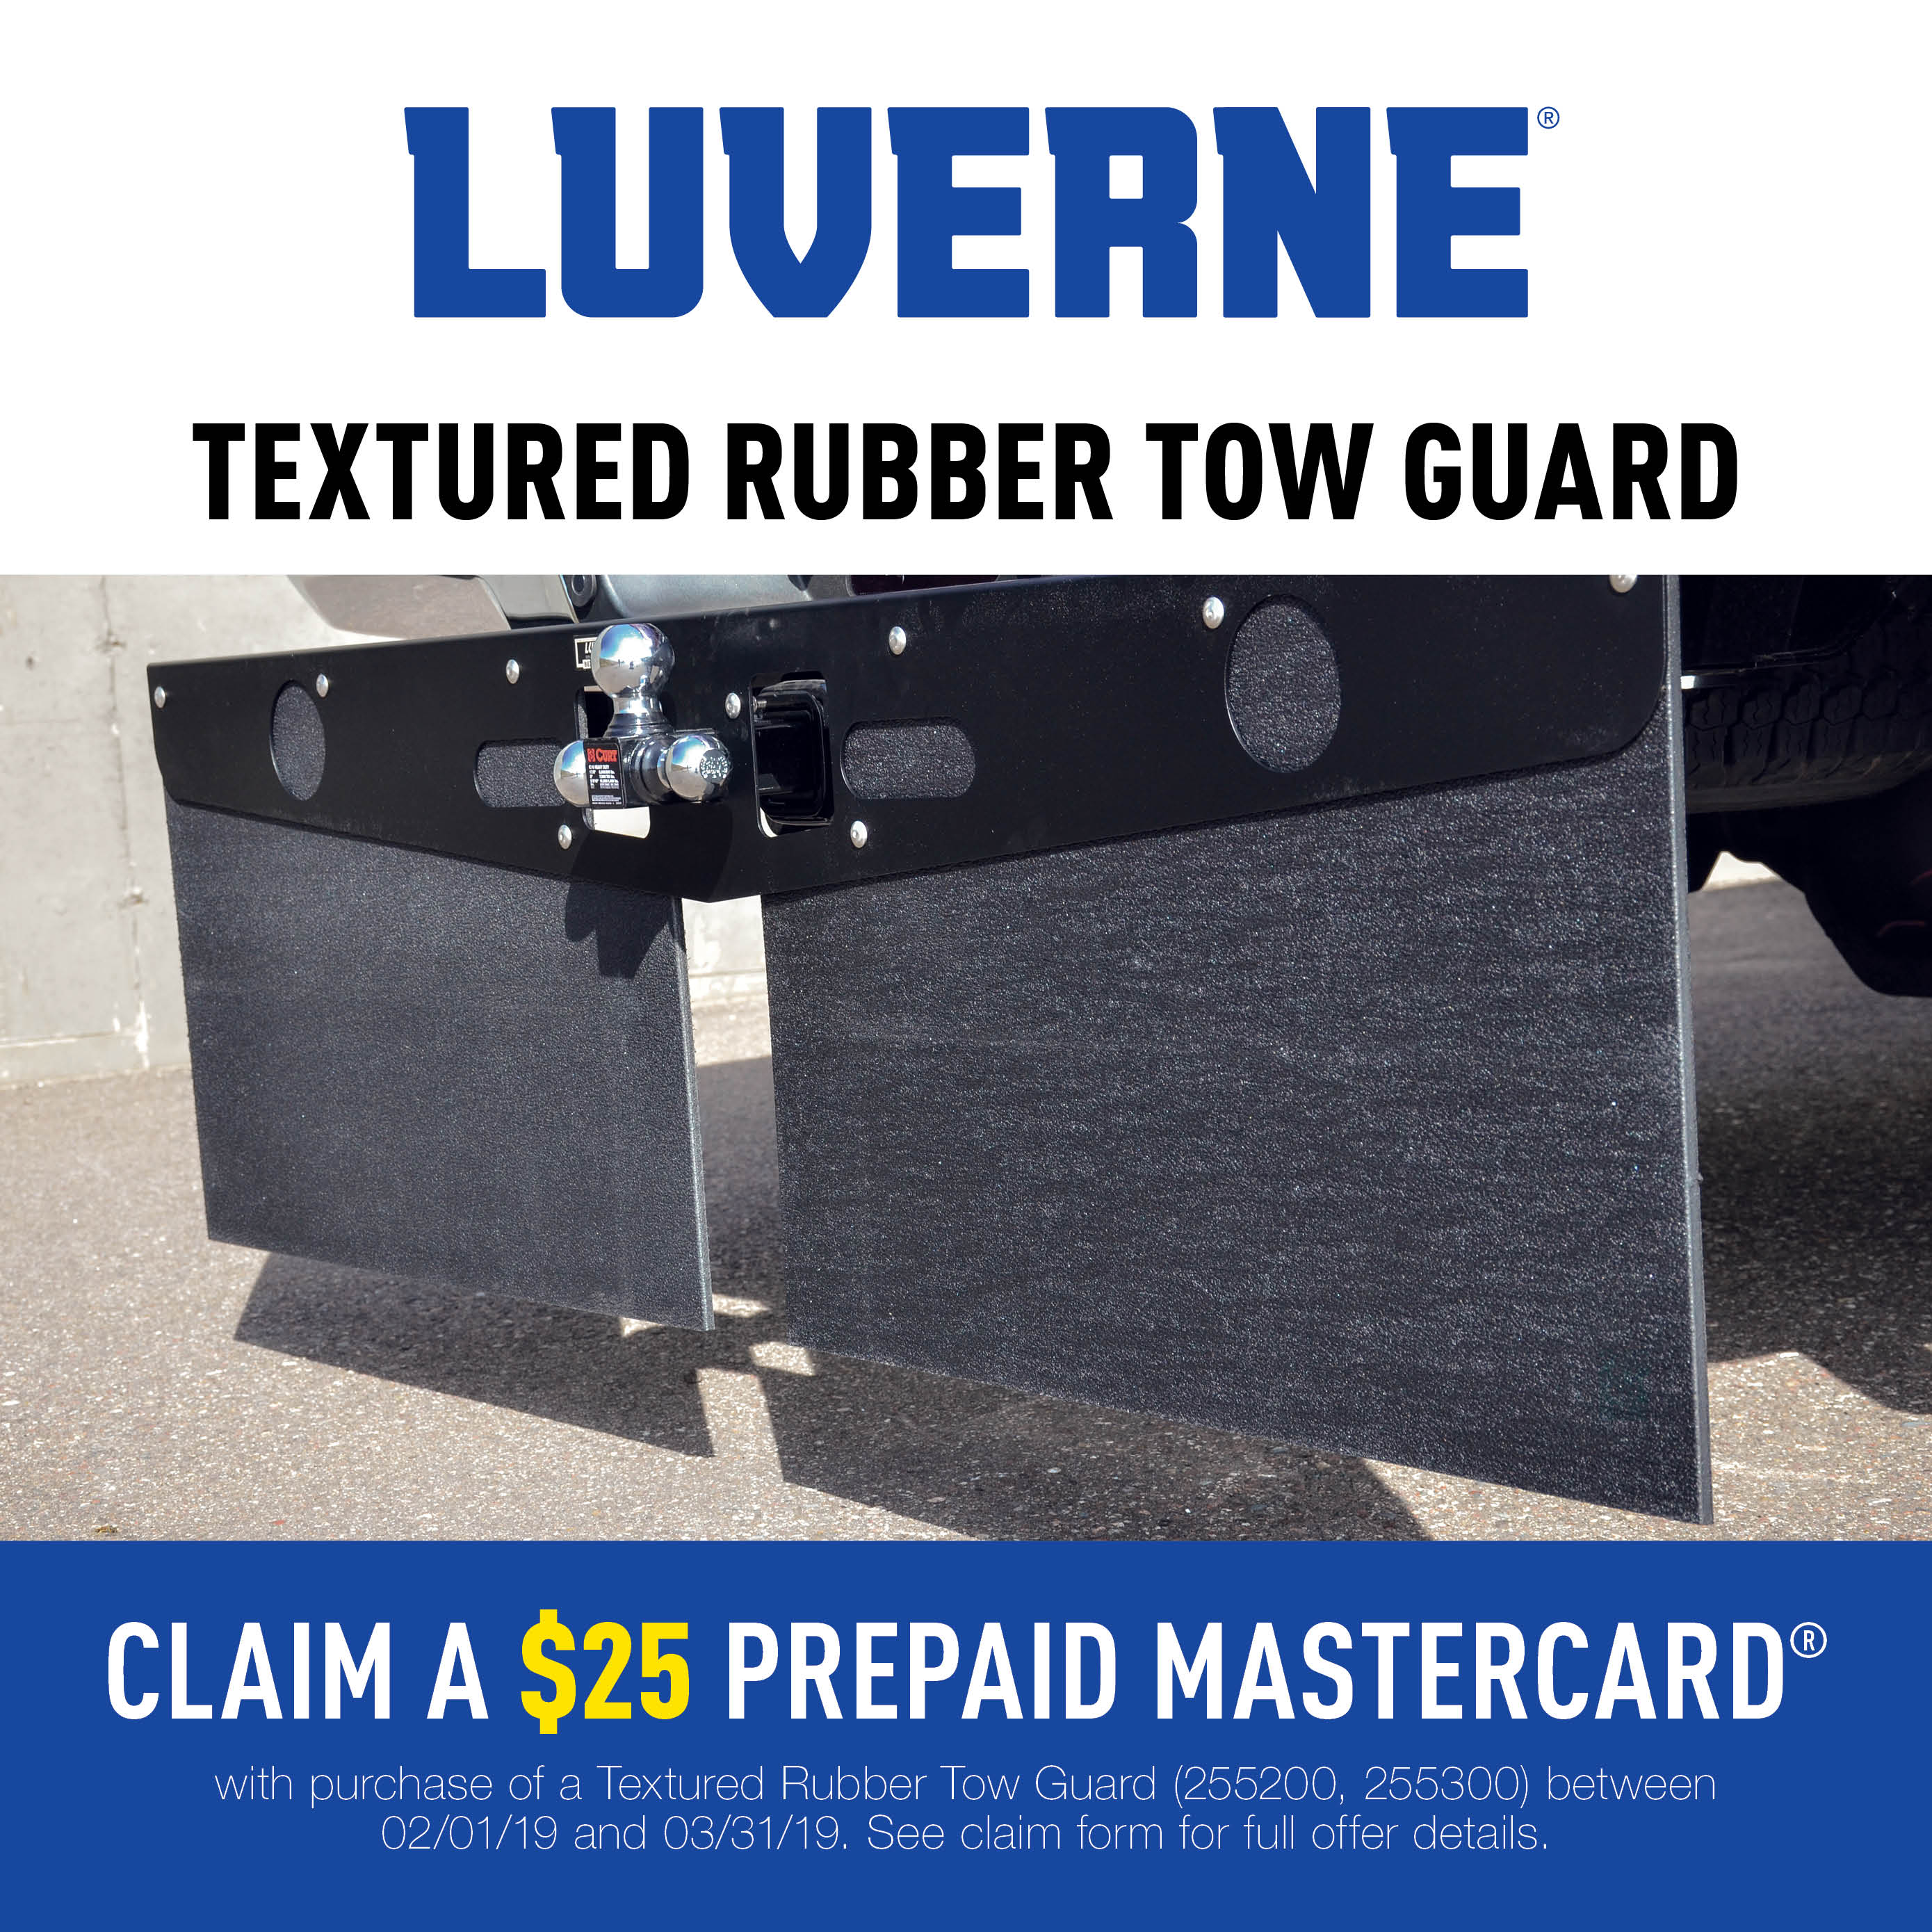 LUVERNE Textured Rubber Mud Guards Promotion 2019